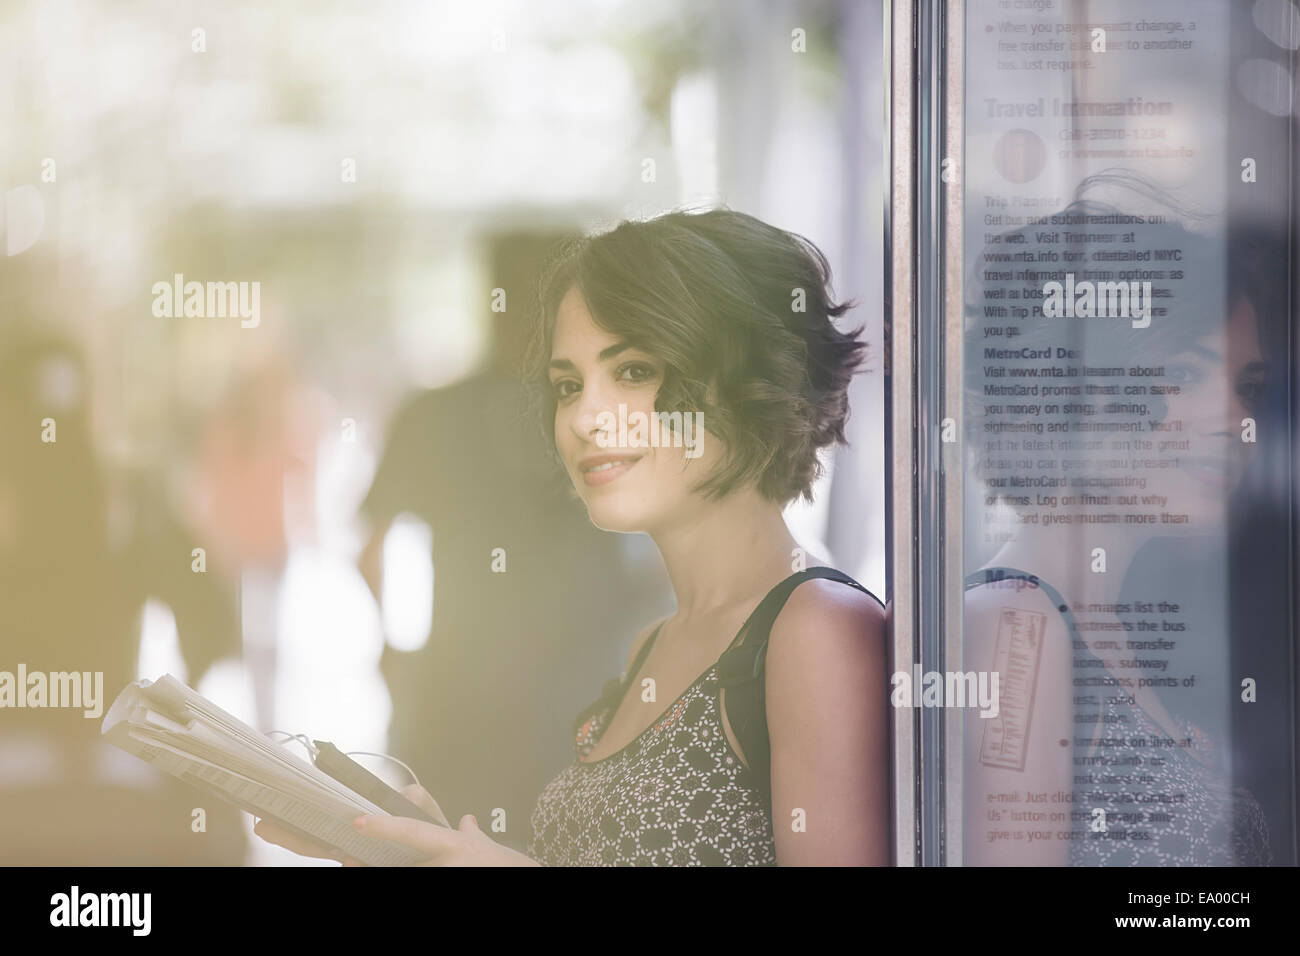 Young woman at bus stop reading newspaper and waiting for bus, New York, US - Stock Image